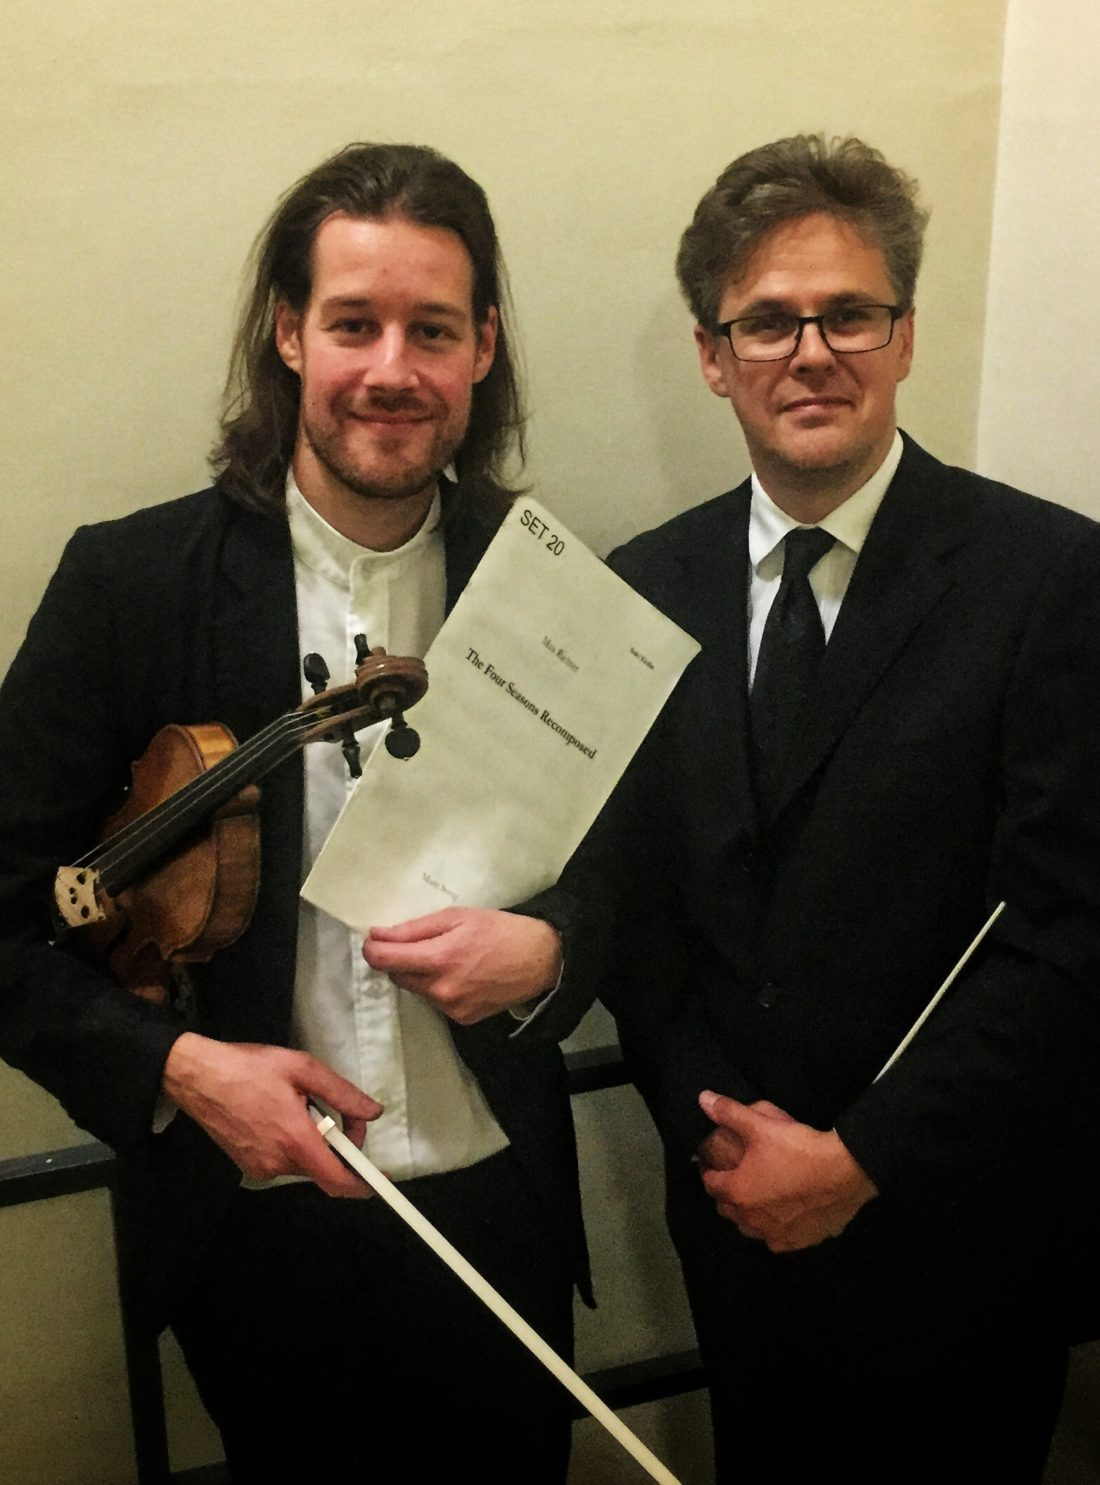 Violinist Thomas Gould with conductor Robin Browning backstage in Turner Sims, Southampton